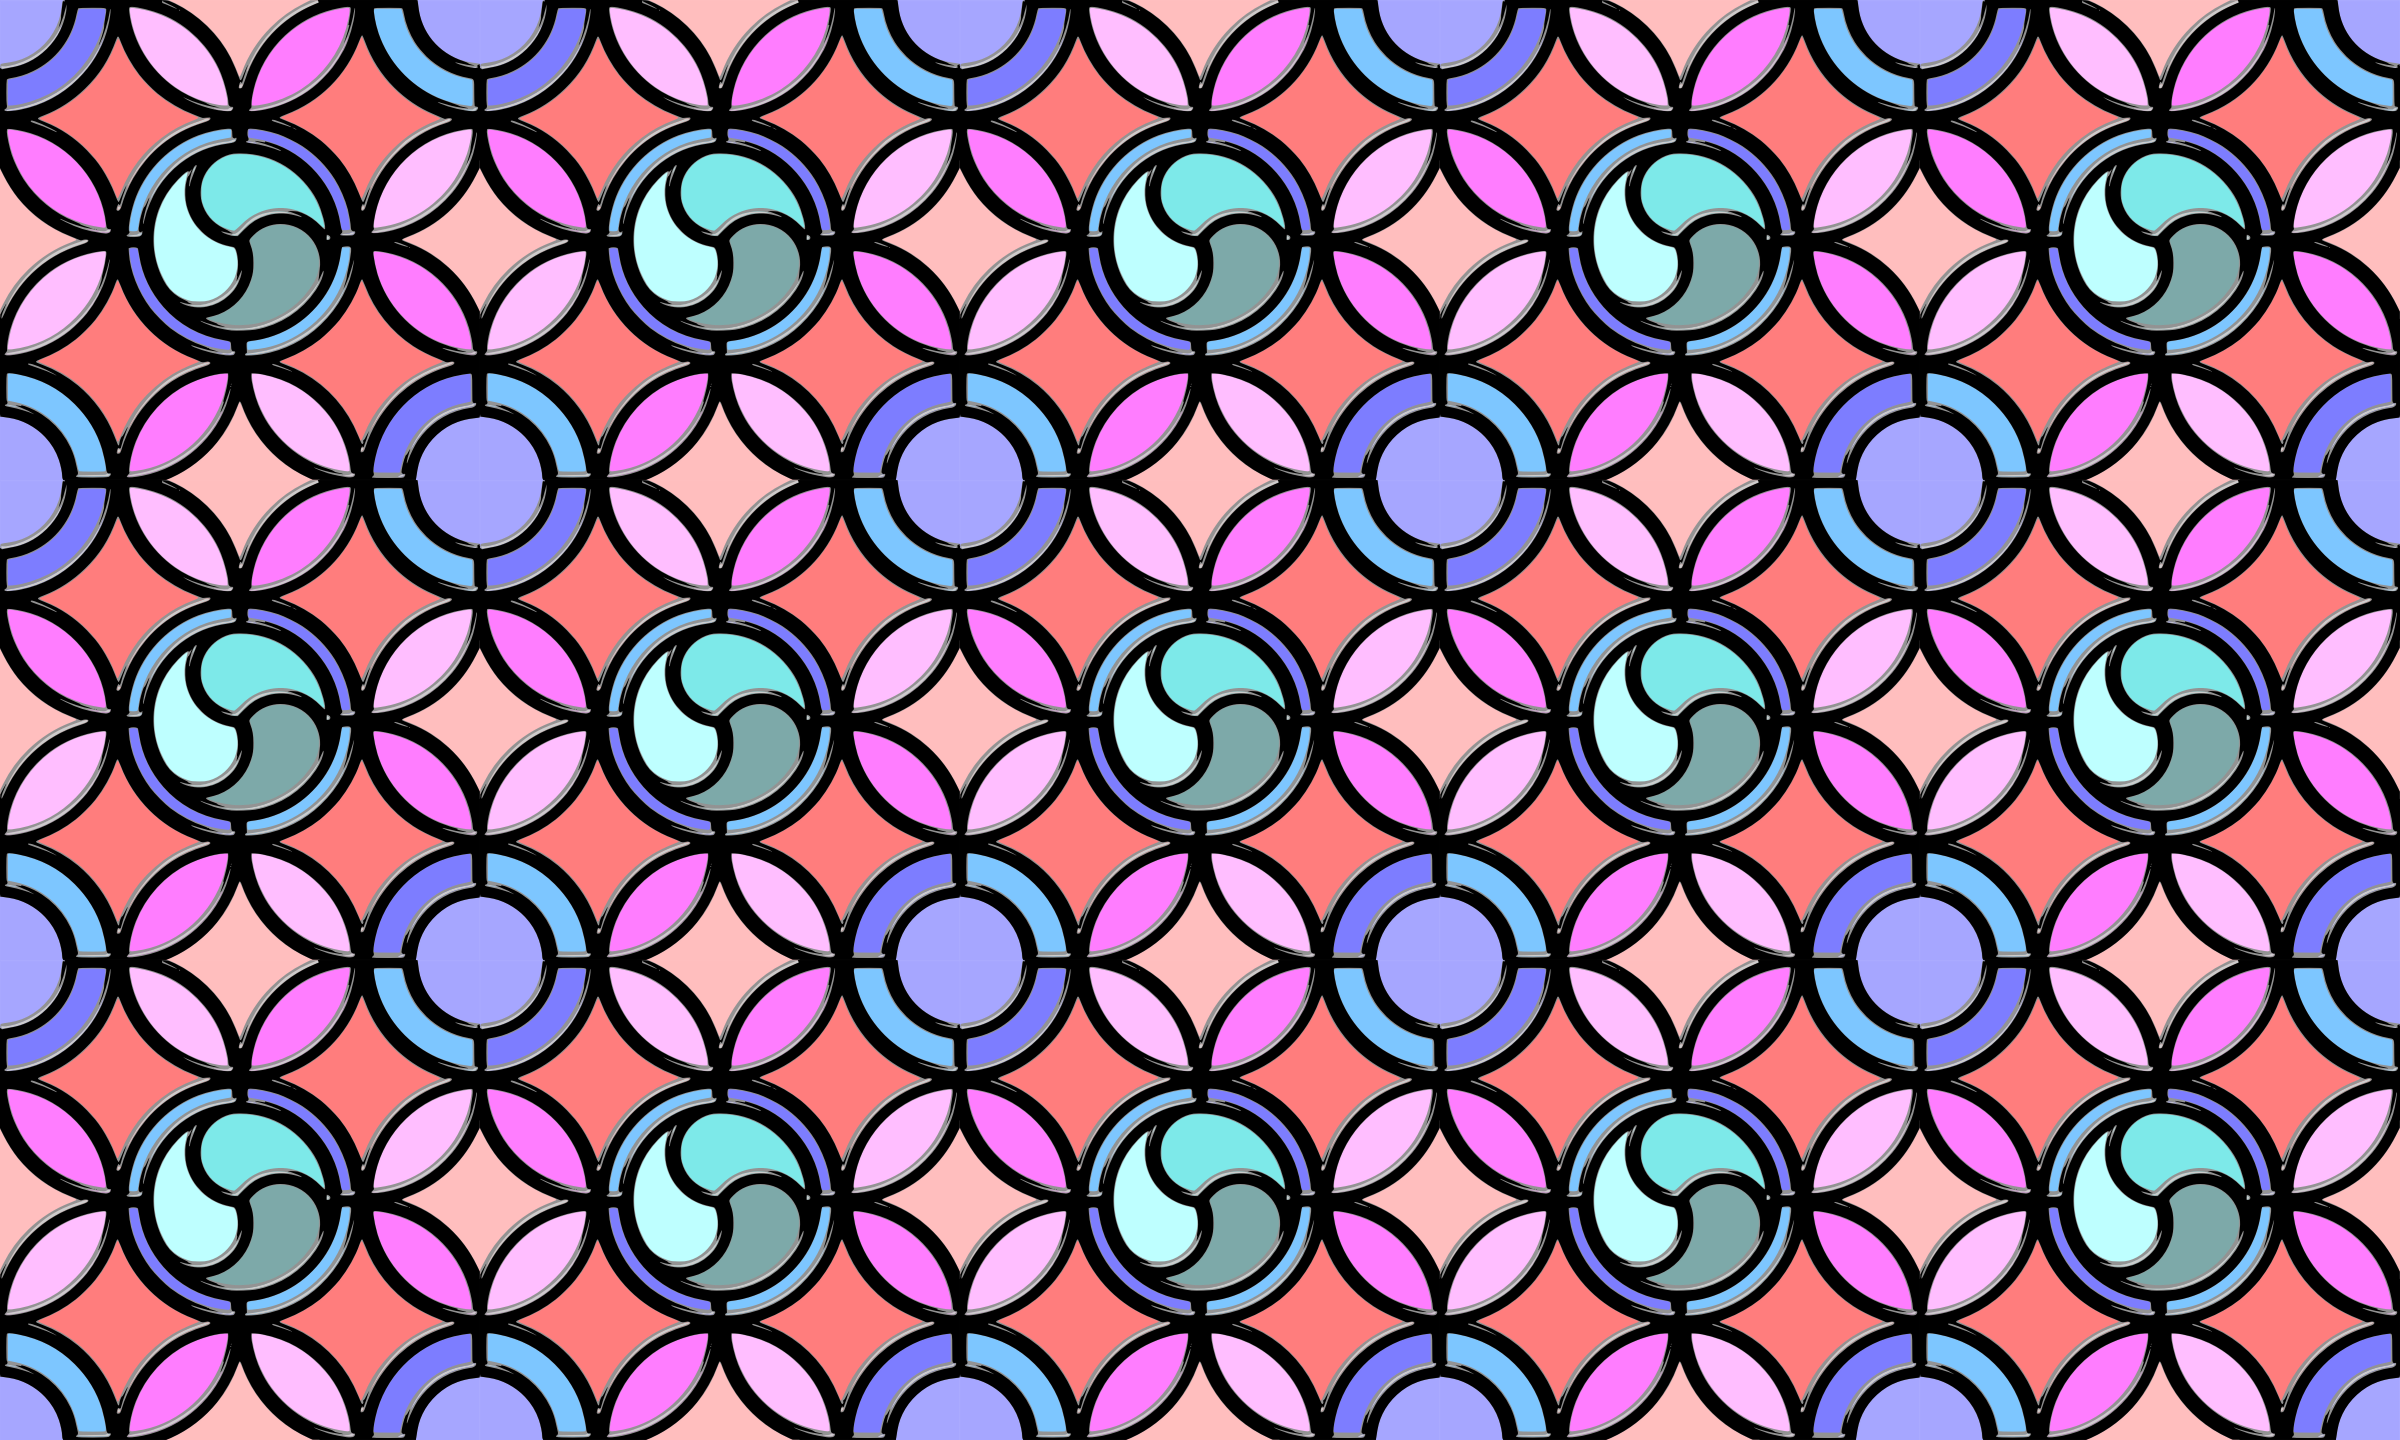 Leaded glass background (colour 2) by Firkin